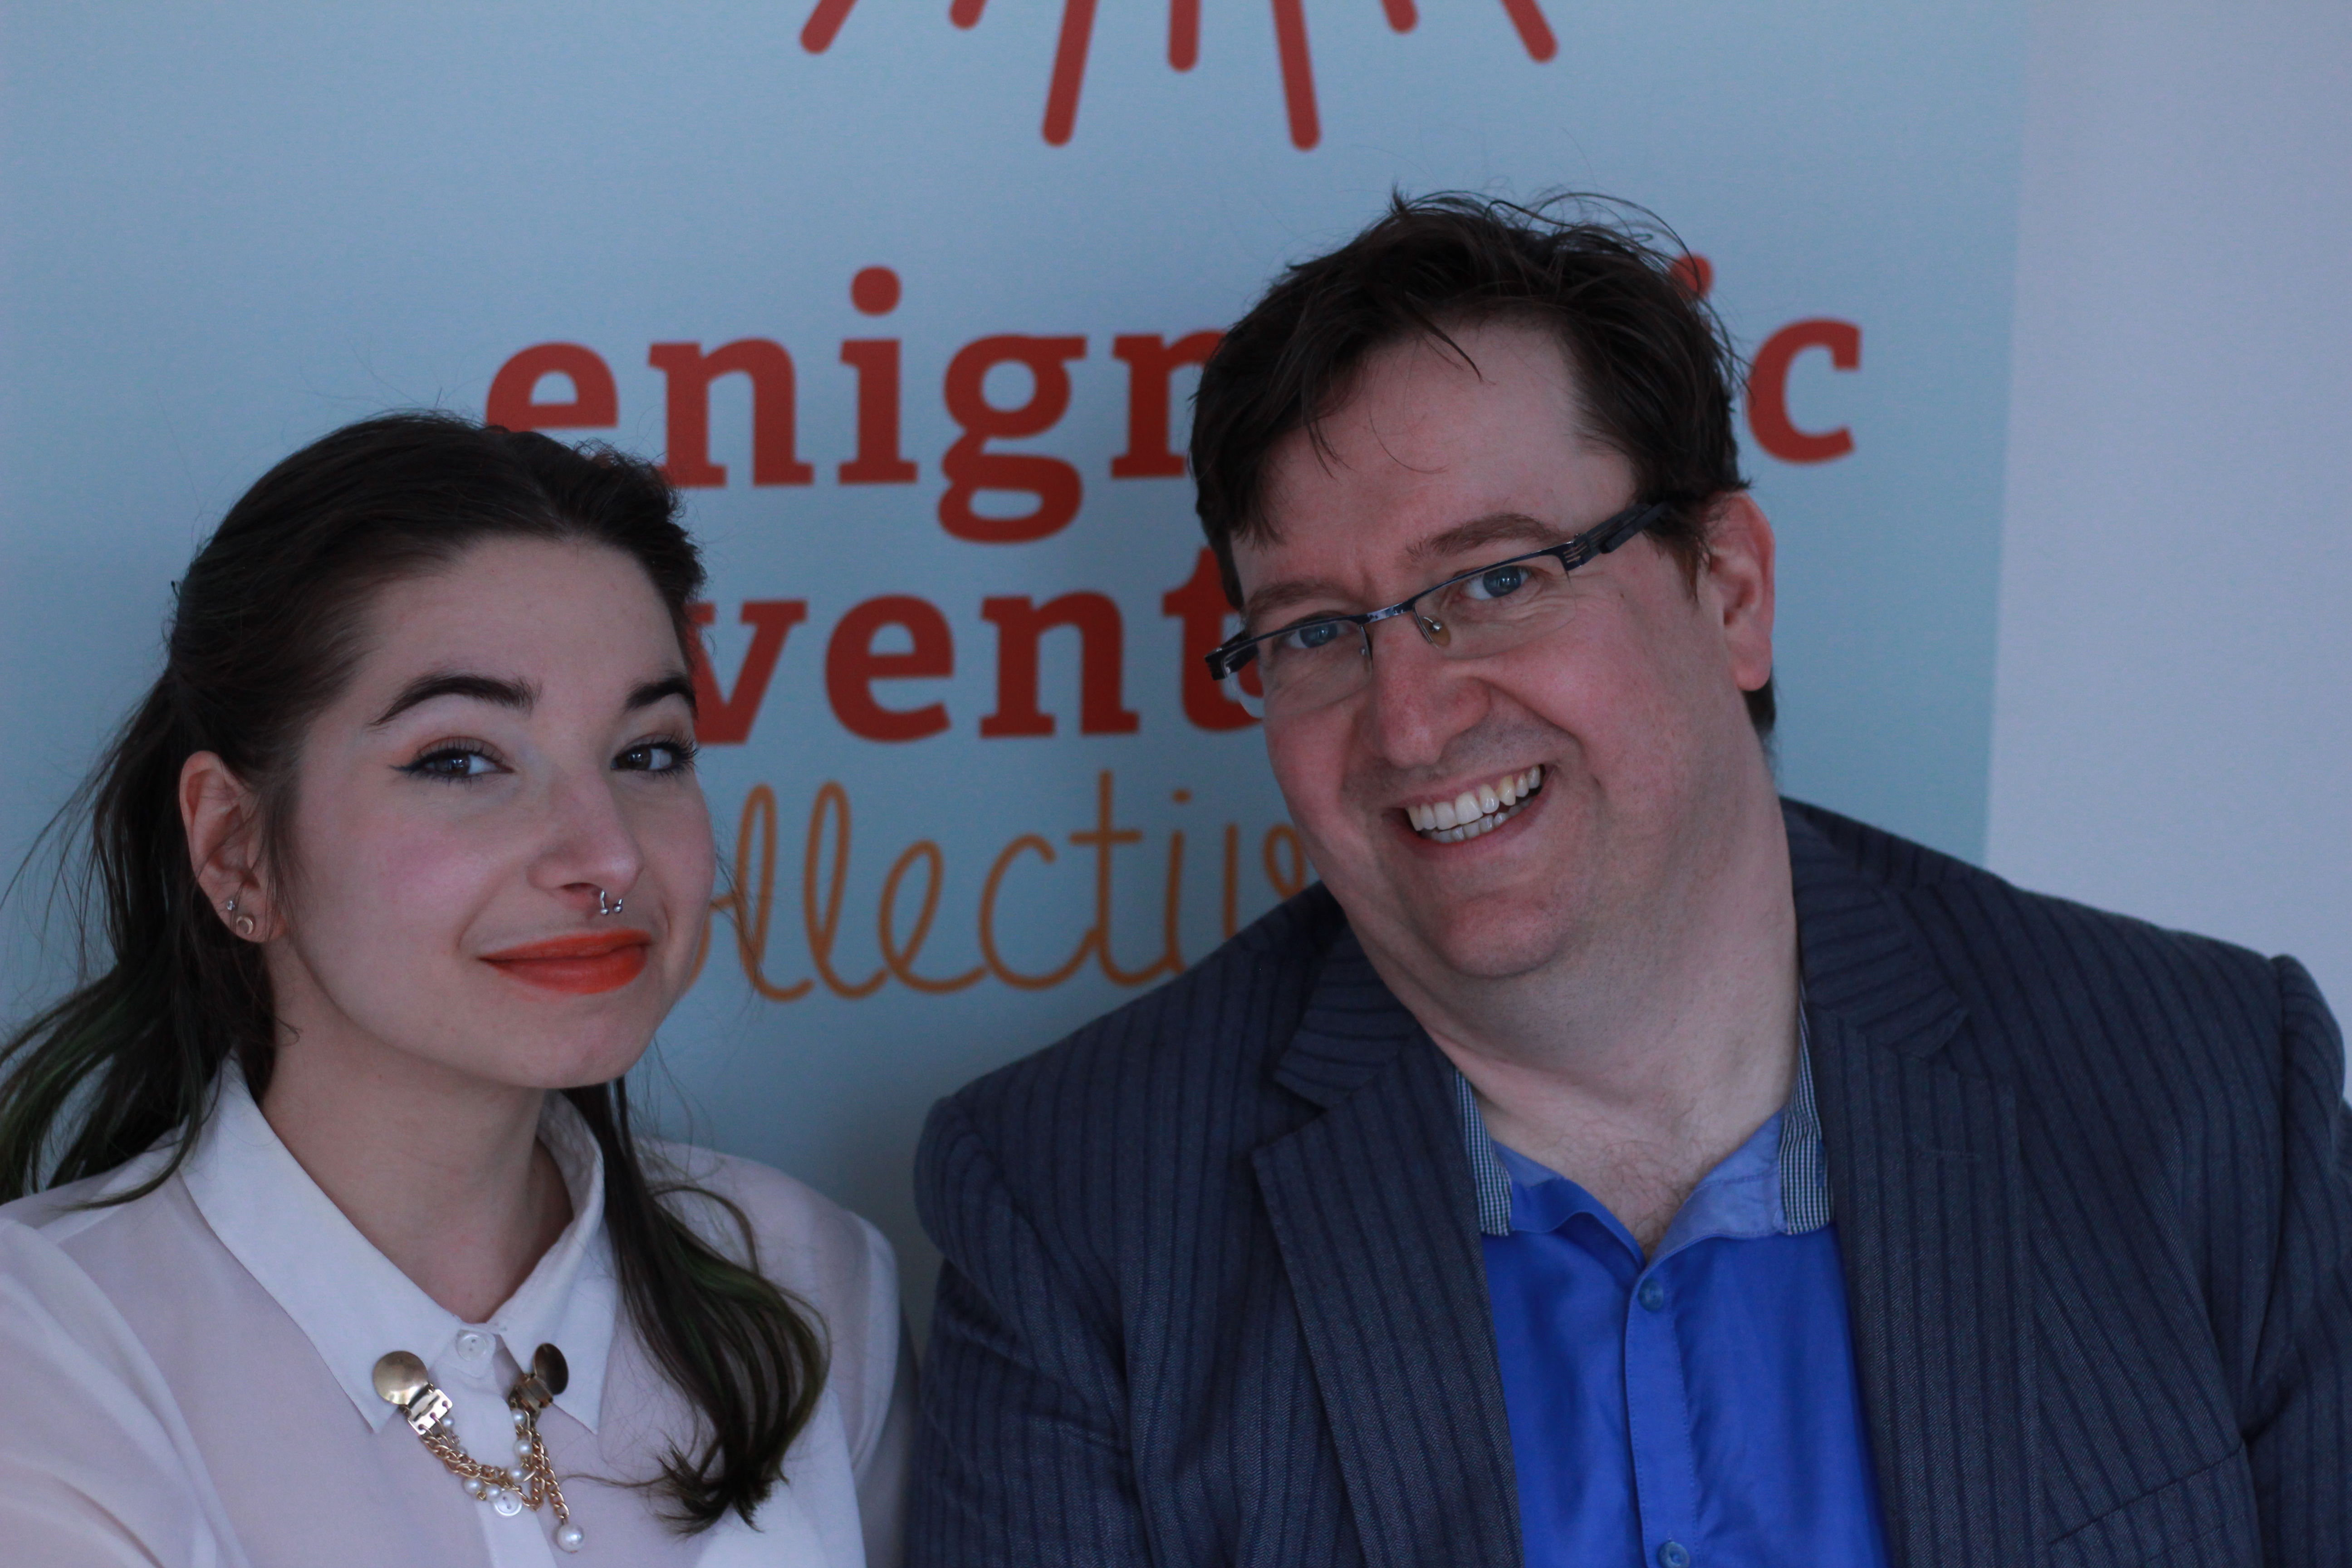 Image of Natasha Guerra and Chris Rudram of Enigmatic Events Collective.